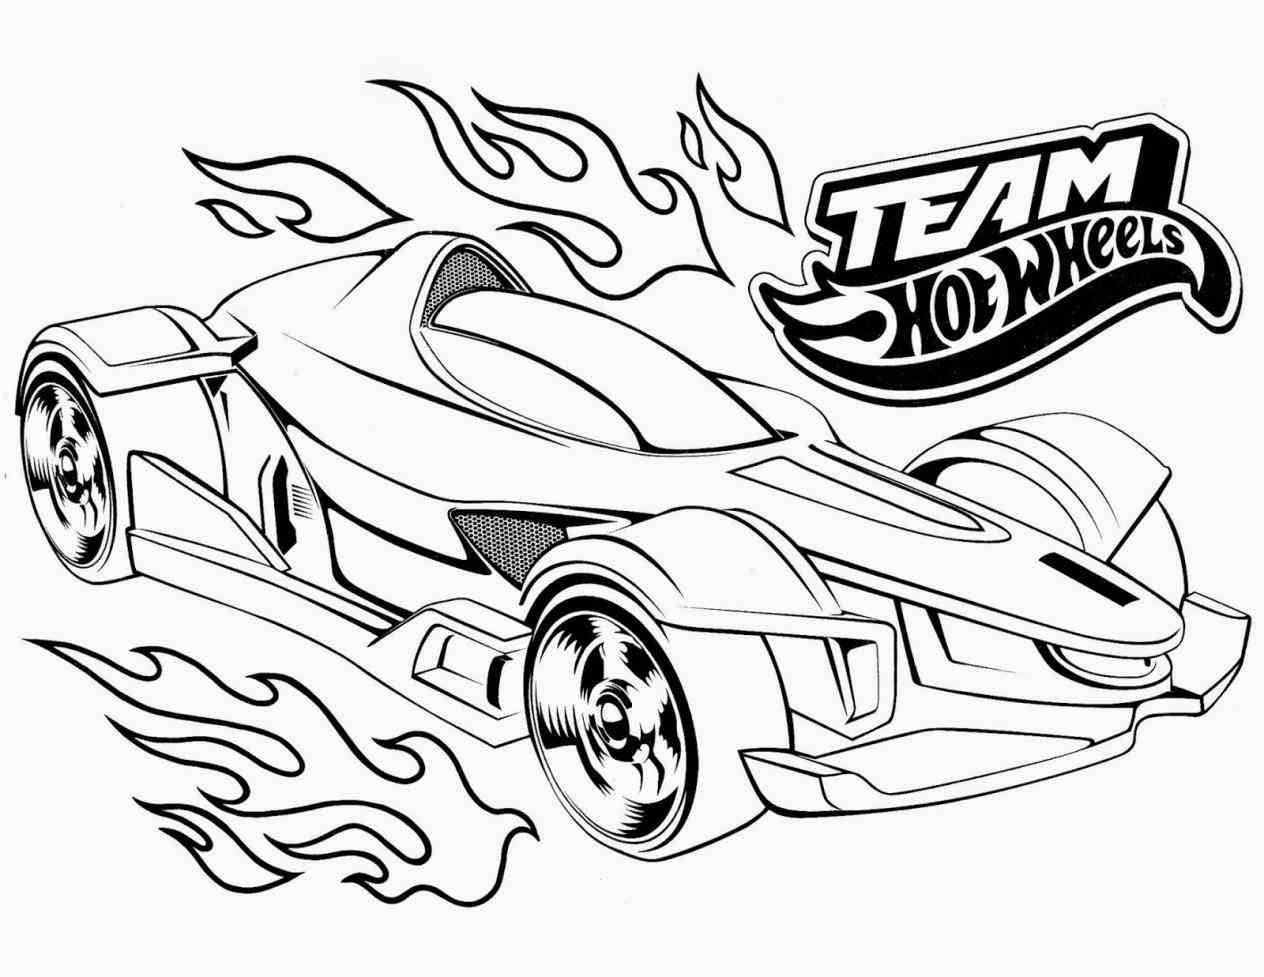 1264x977 Race Car Coloring Pages Free To Printout Printable Adult